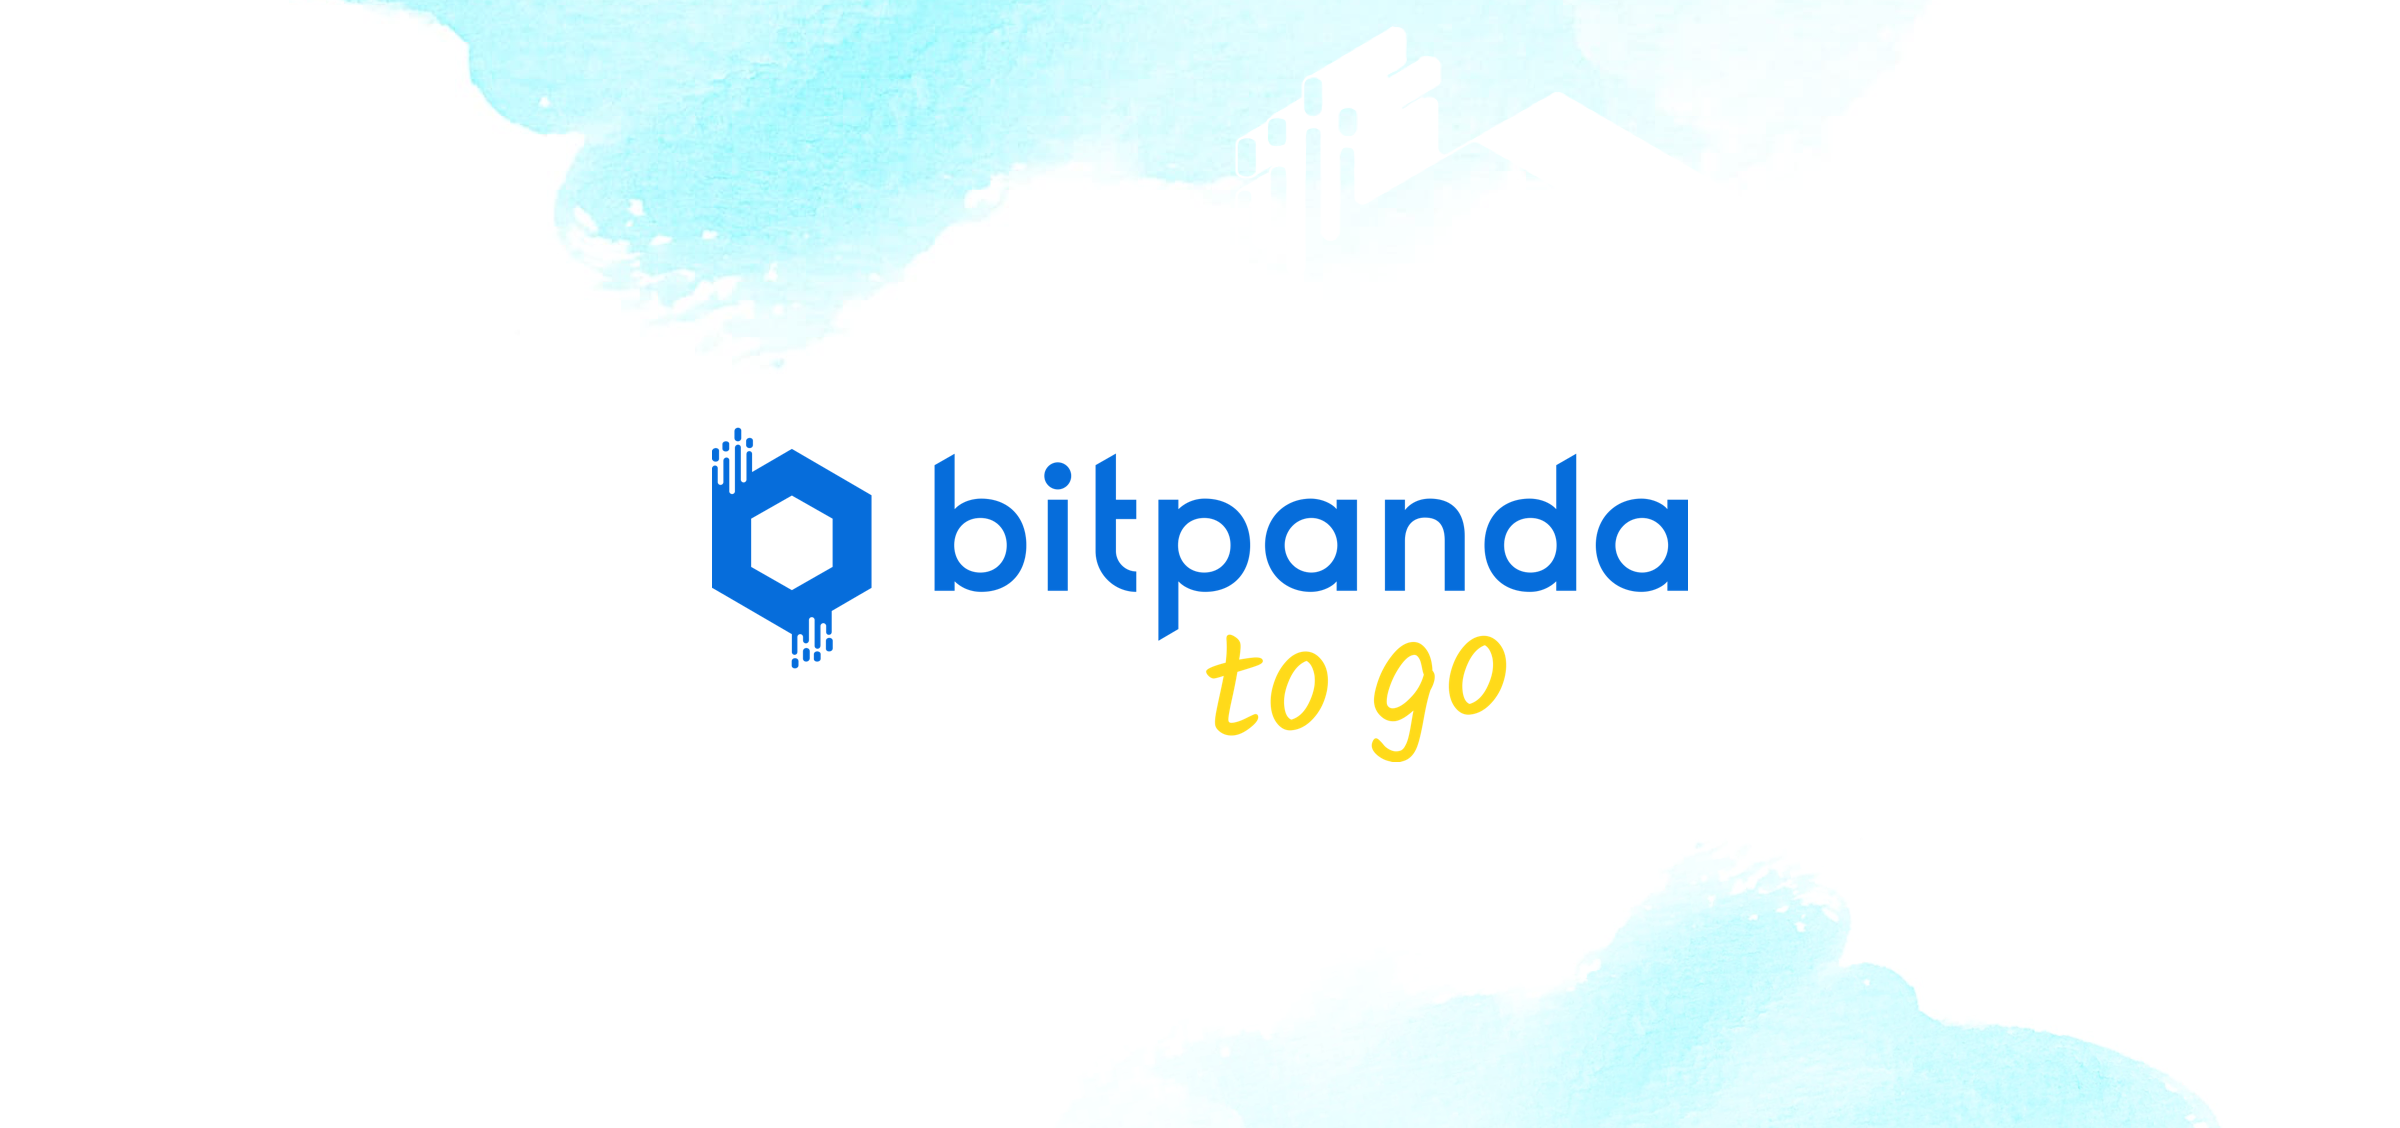 Cash And Go >> Bitpanda To Go Buying Bitcoin And More With Cash Is Now